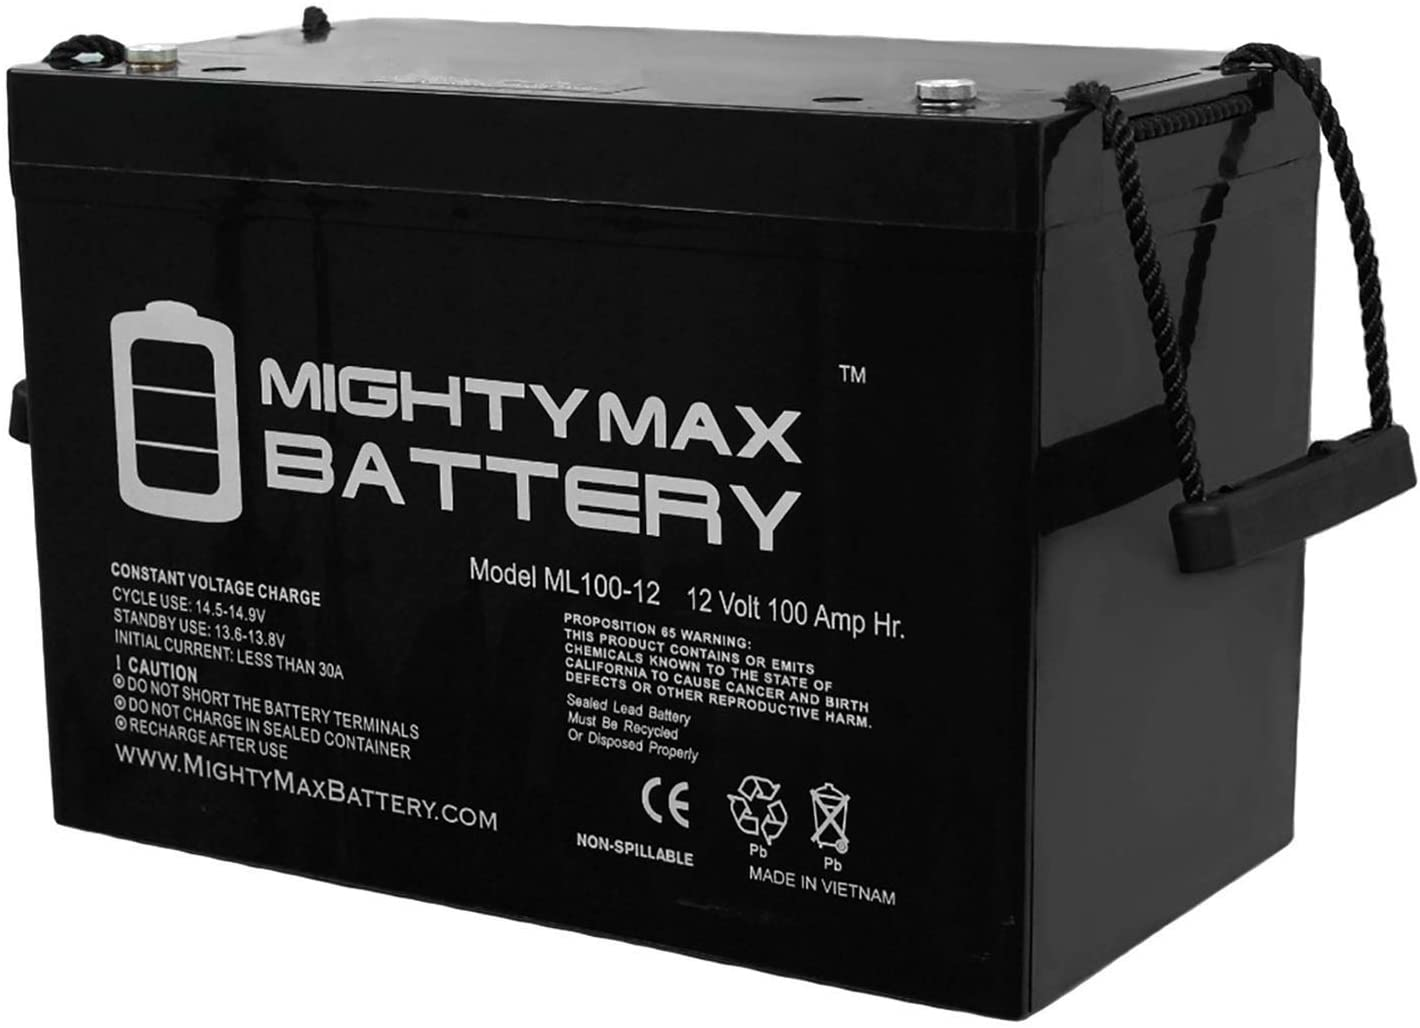 Mighty Max Battery 12V 100Ah SLA AGM Battery for SeaSense Box Power Station Brand Product